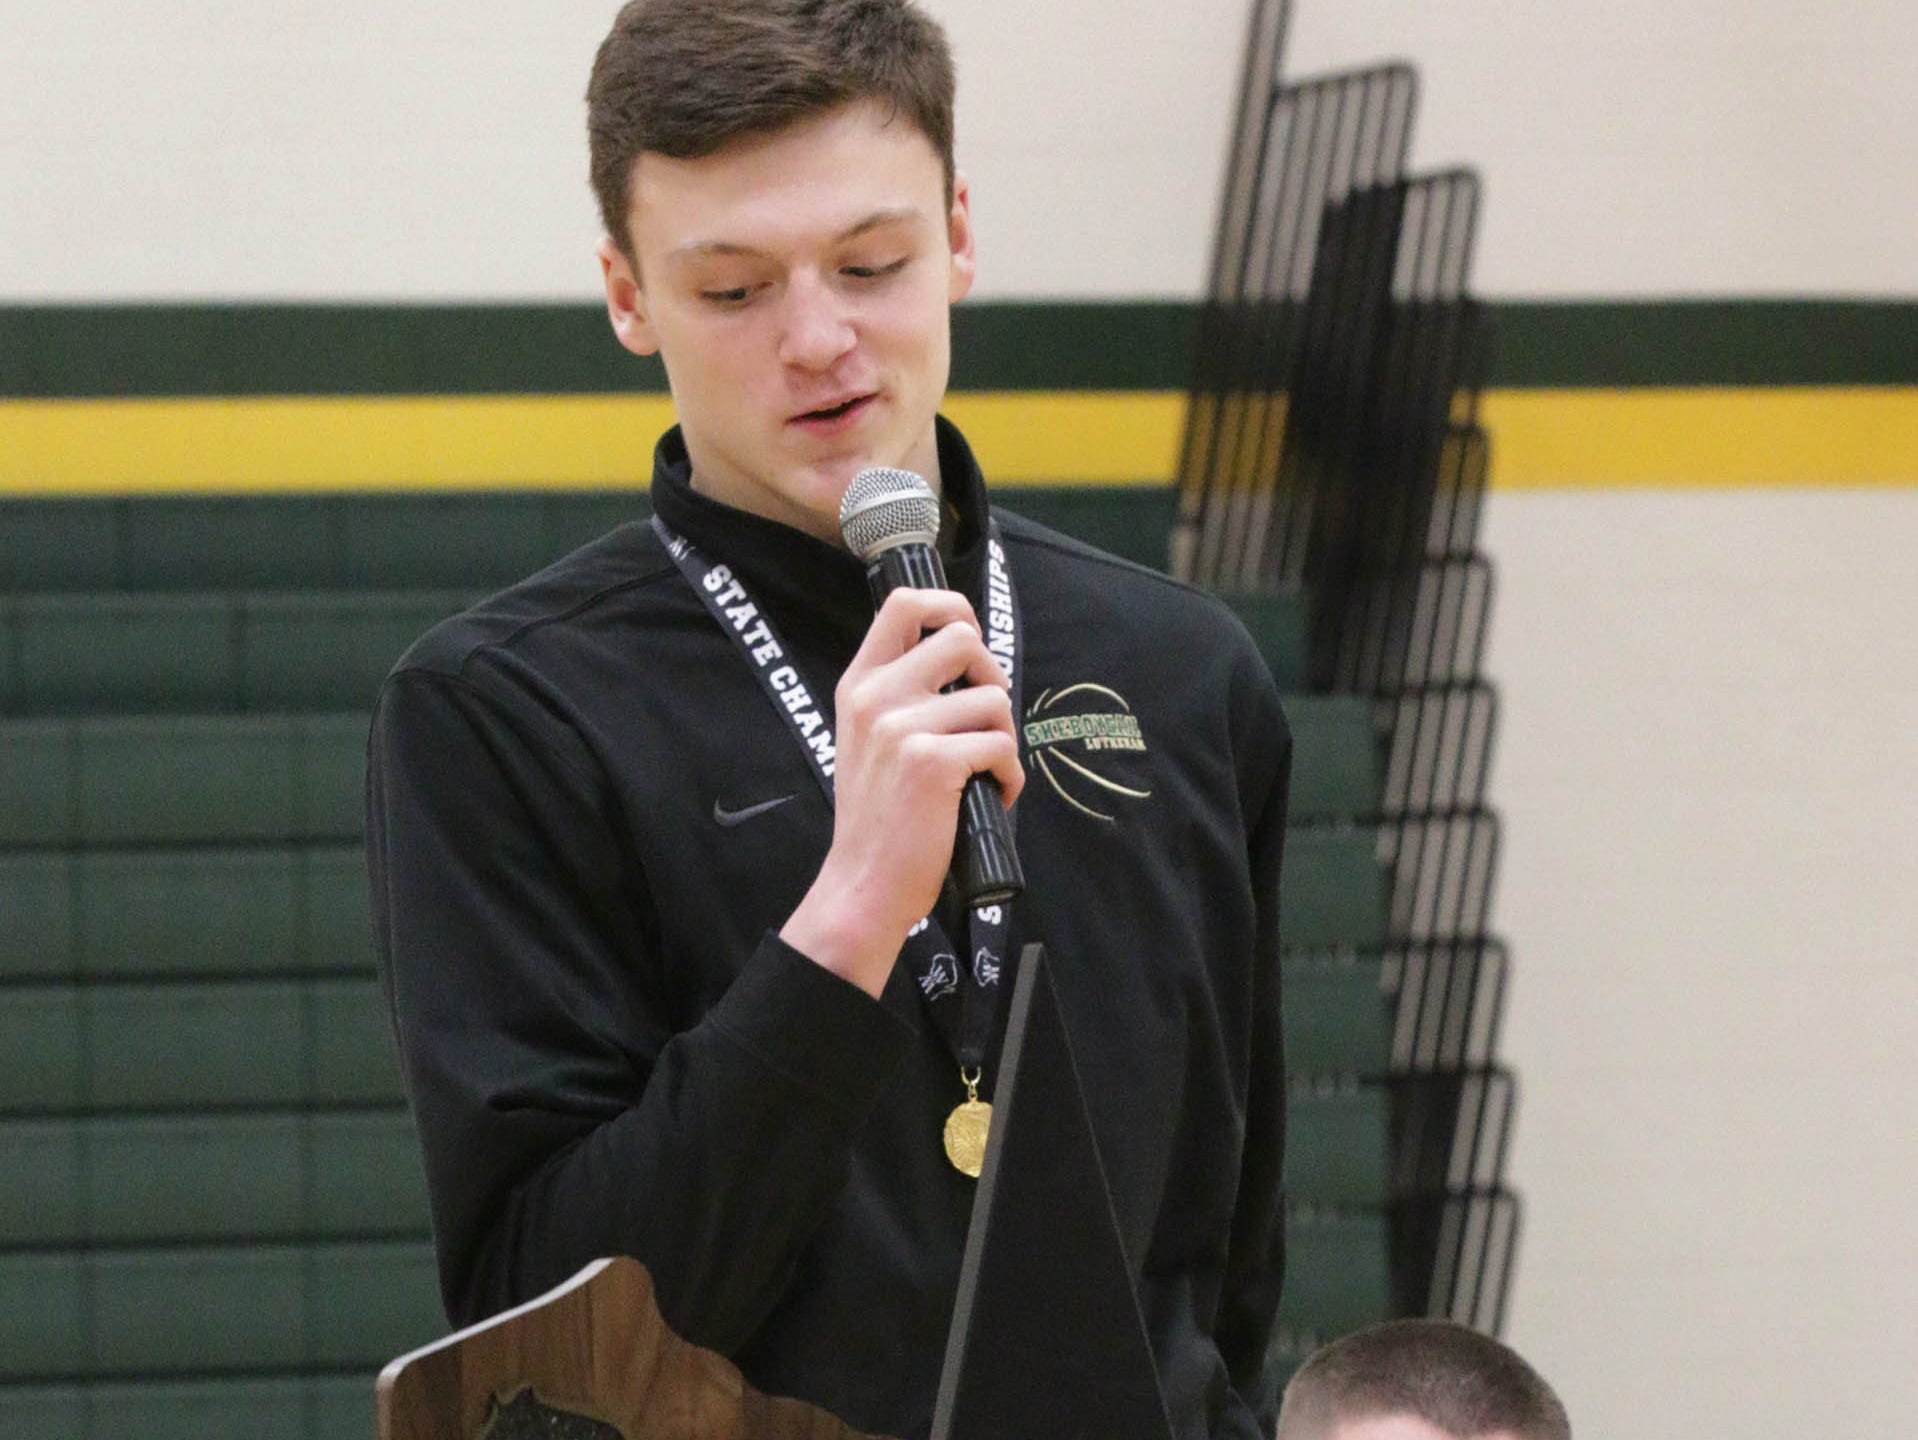 Sheboygan Lutheran player Jacob Ognacevic speaks about his favorite moment at state, Sunday, March 17, 2019, in Sheboygan, Wis.